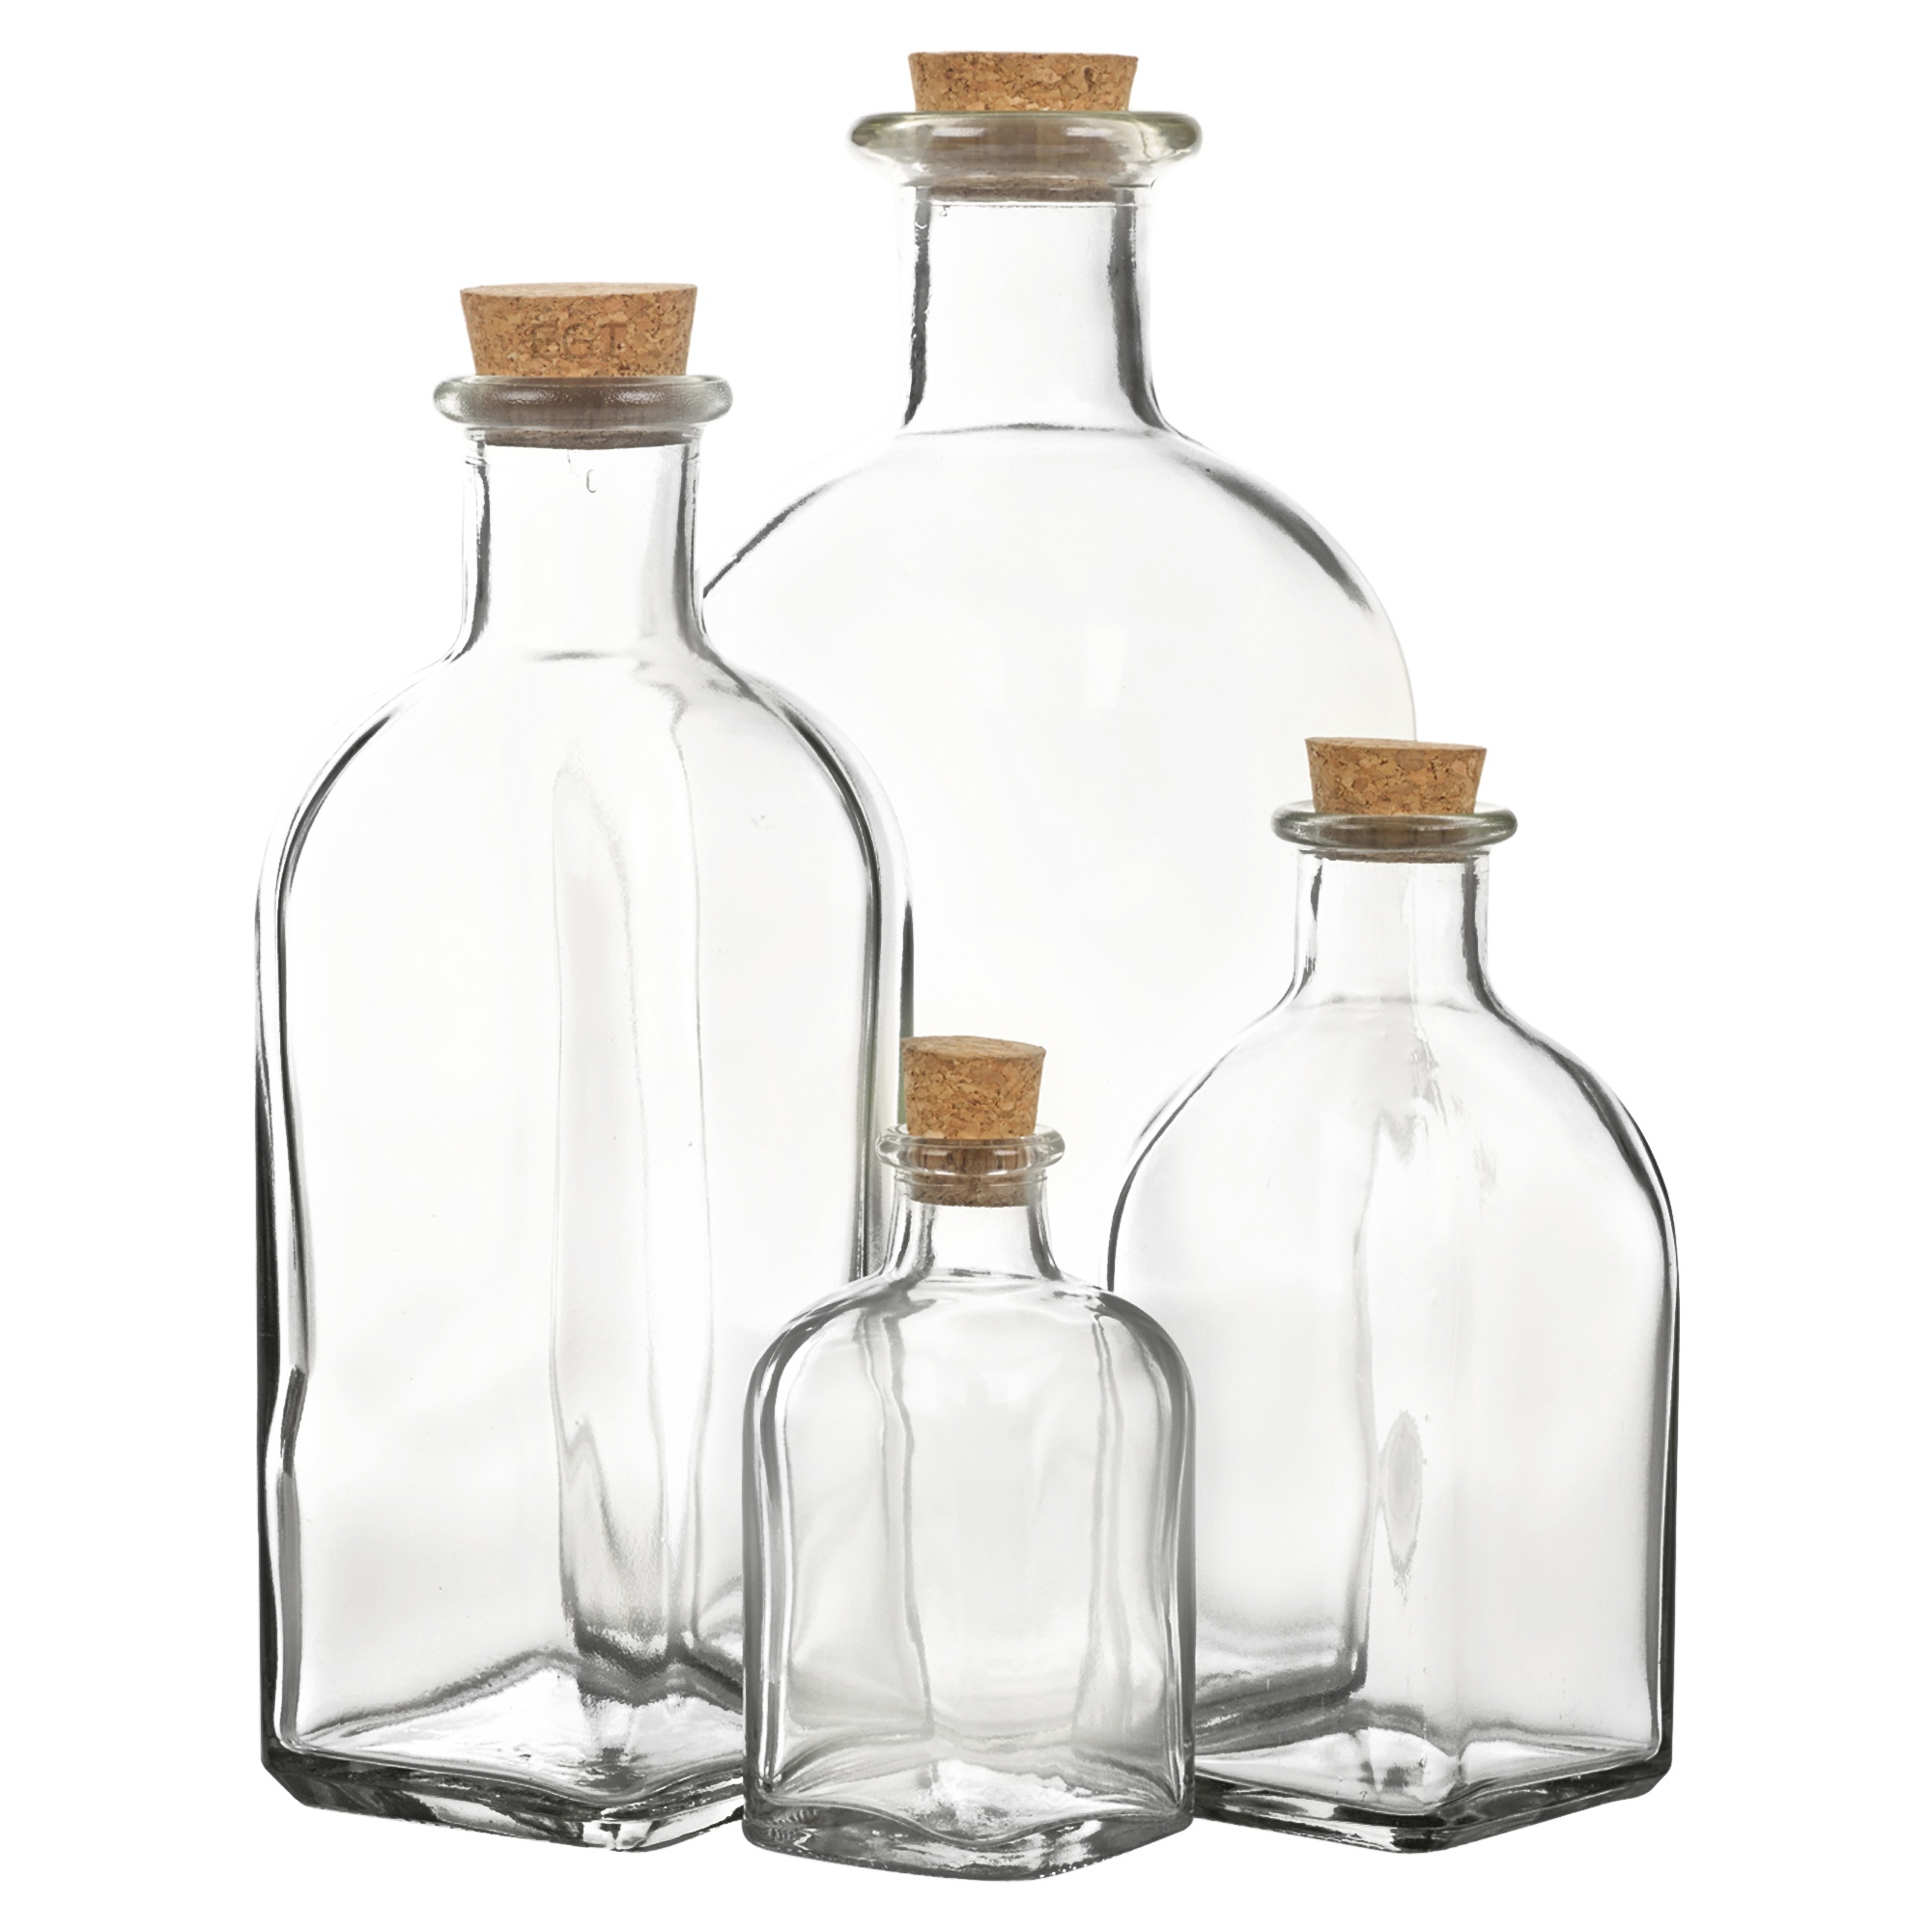 Cork Jar 3 6 9 12 Glass Bottle Jars Vials Cork Lid Stopper Kitchen